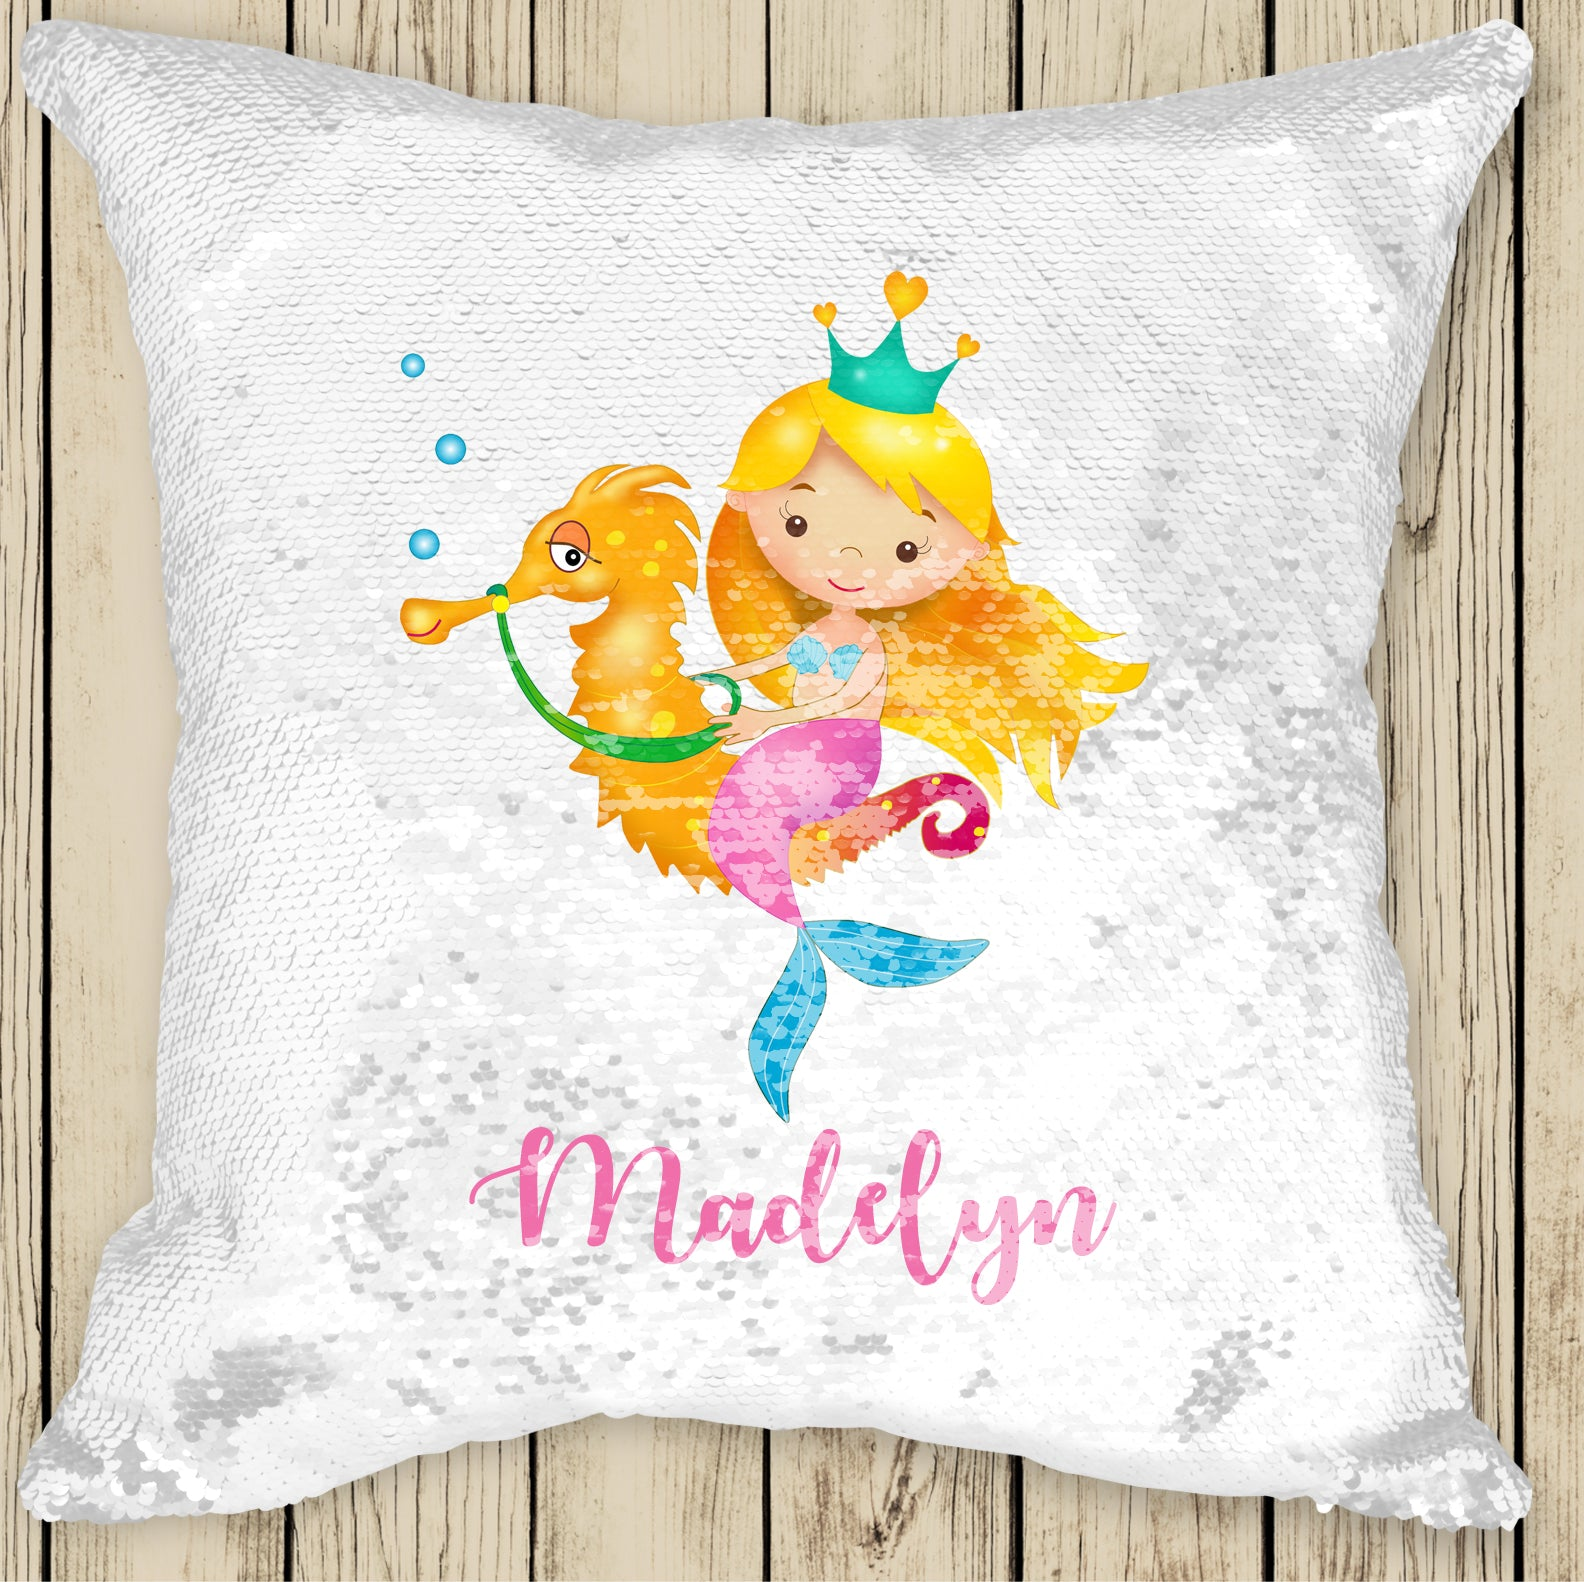 Sequin Cushion Cover - Mermaid